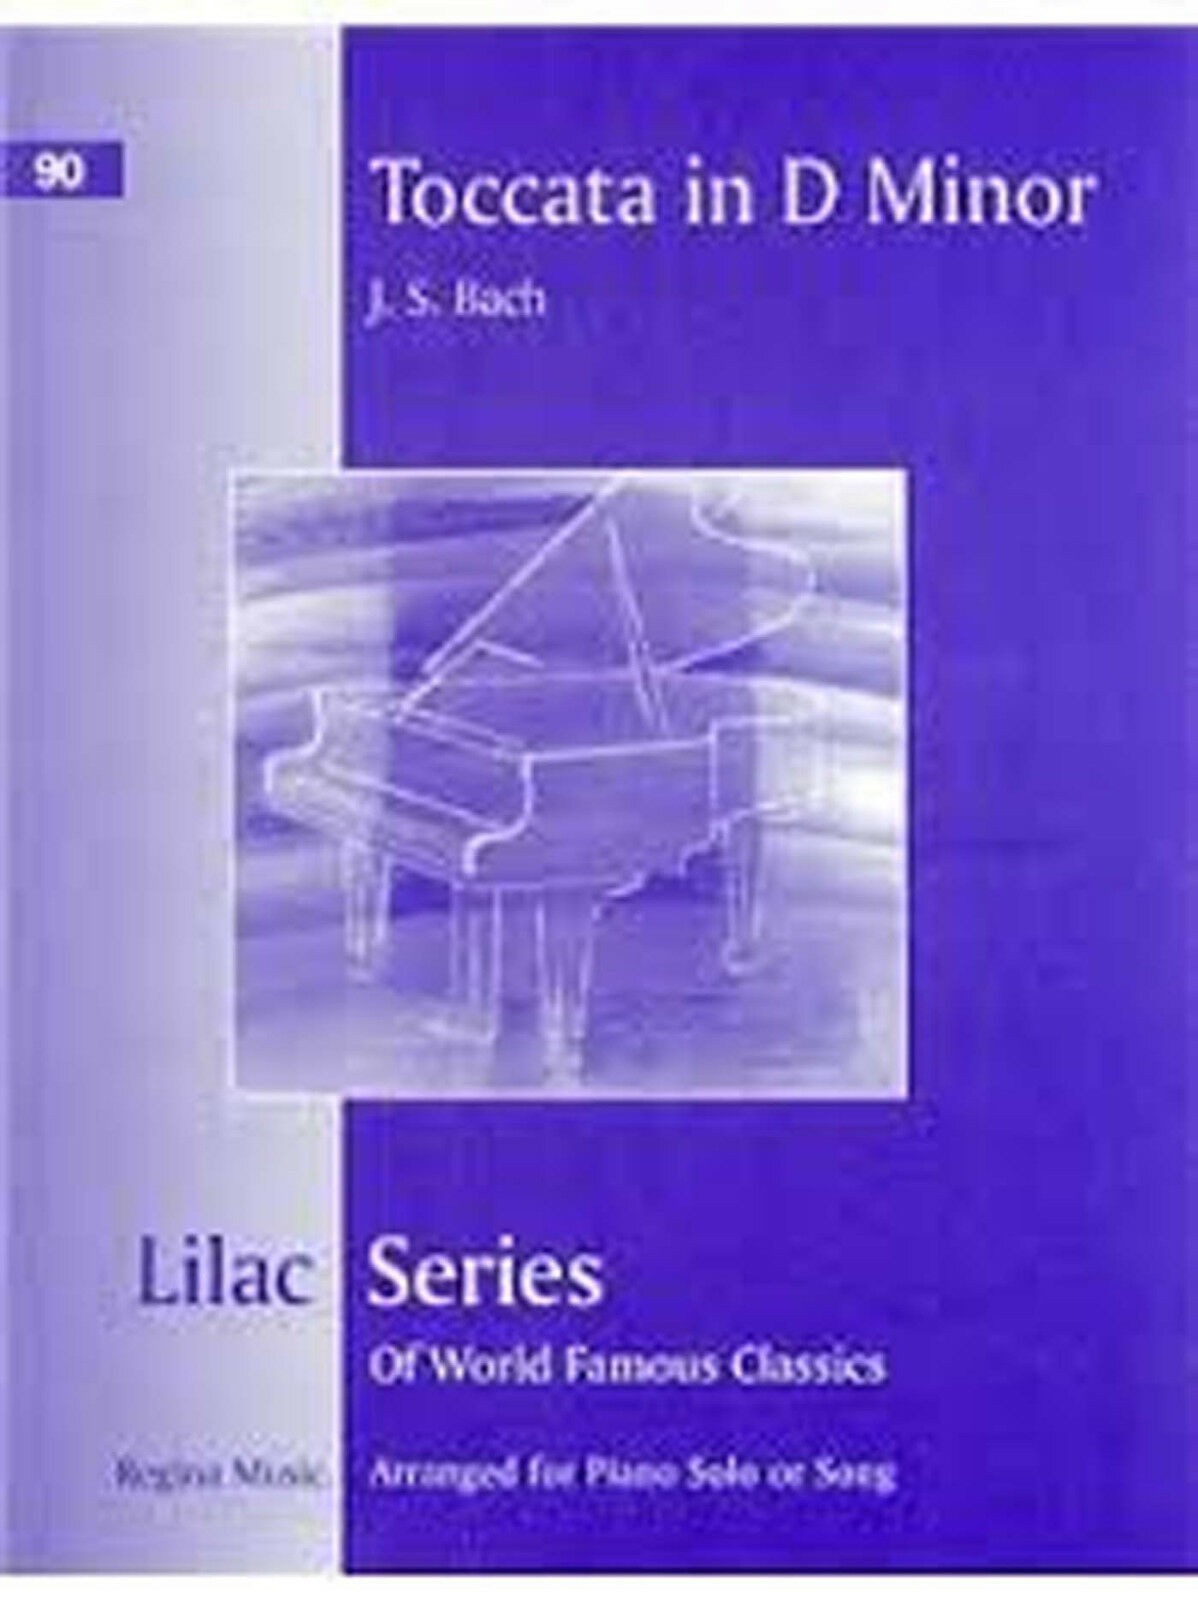 Lilac Series No 95 Morning Grieg Peer Gynt Piano Sheet Music Book S27